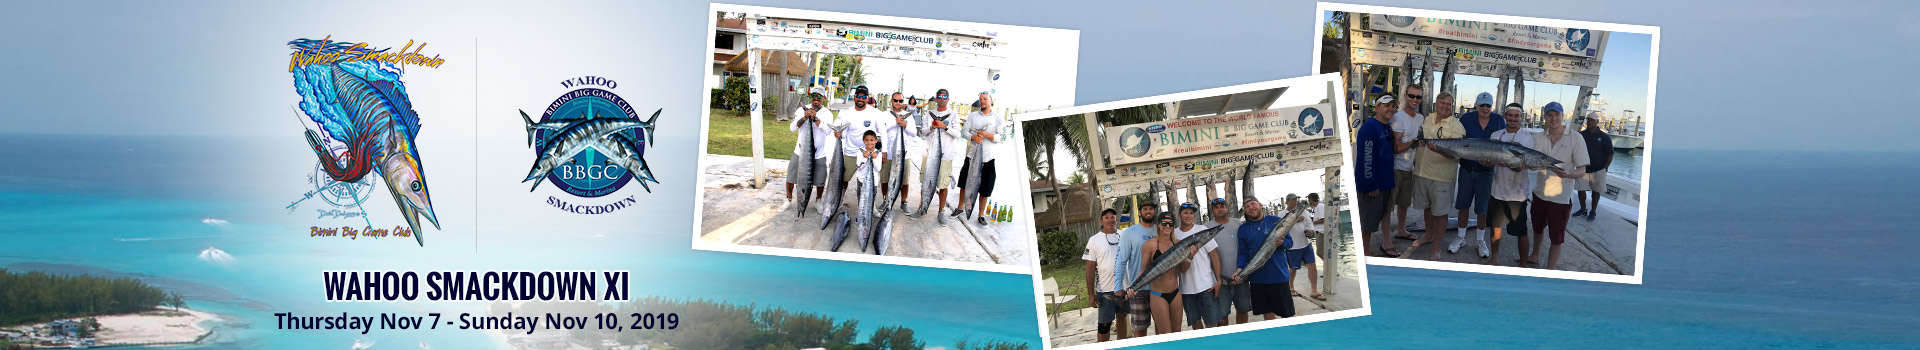 Bimini Big Game Club Resort & Marina Tournament